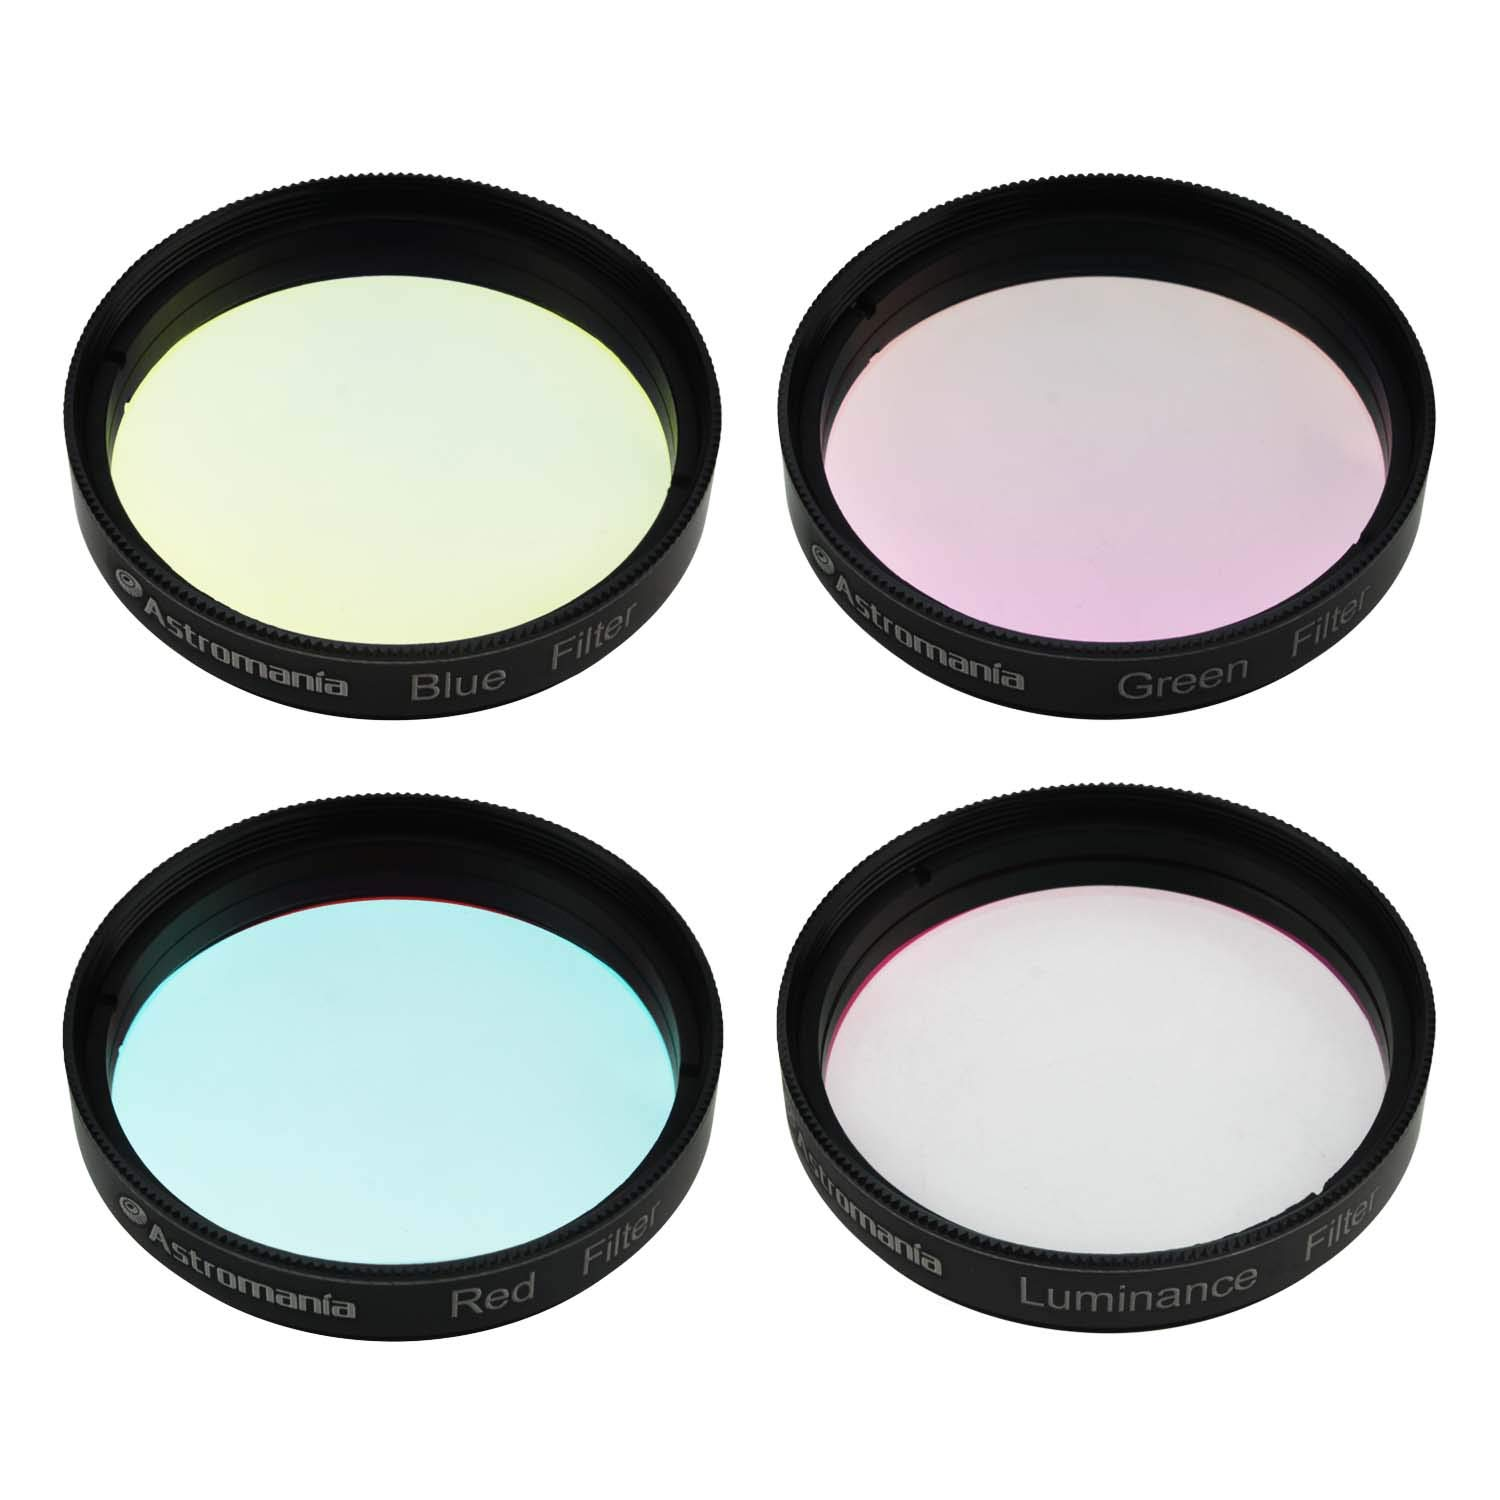 Astromania Deluxe Telescope LRGB 2 Inch Filter Set - Colour Filters for Use with Monochrome CCD Cameras - Give Stunning Astrophotographic Results by Astromania